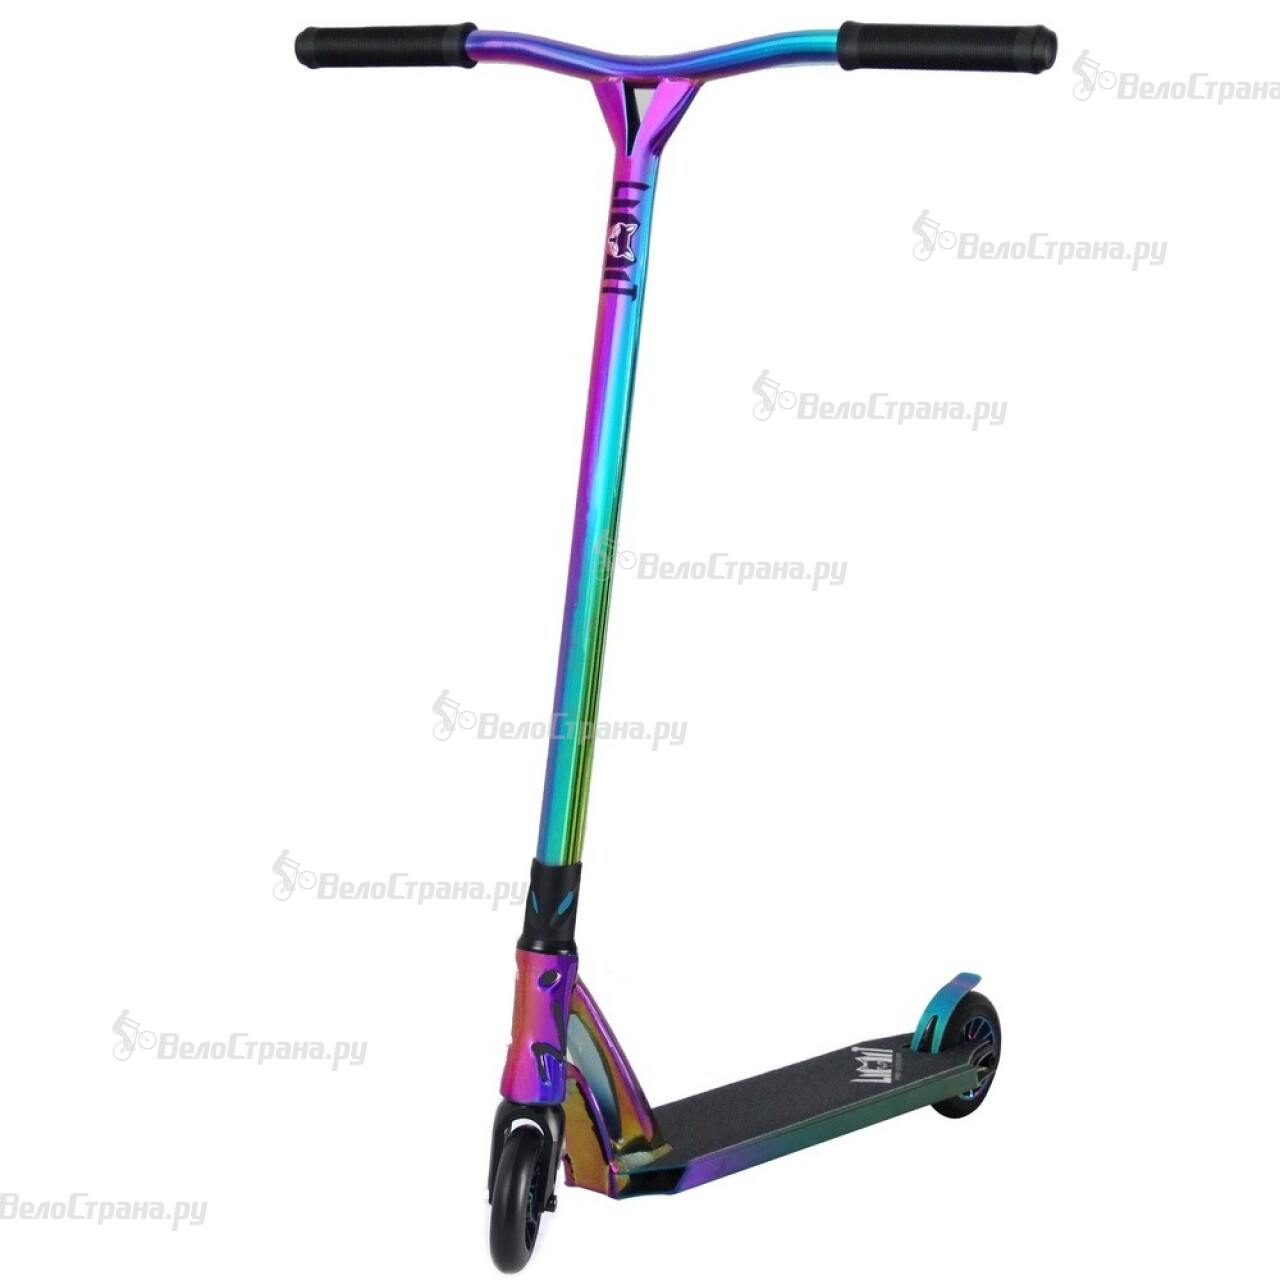 Самокат Limit LMT06 PRO STUNT SCOOTER NEO CHROME limit lmt 06 pro stunt scooter